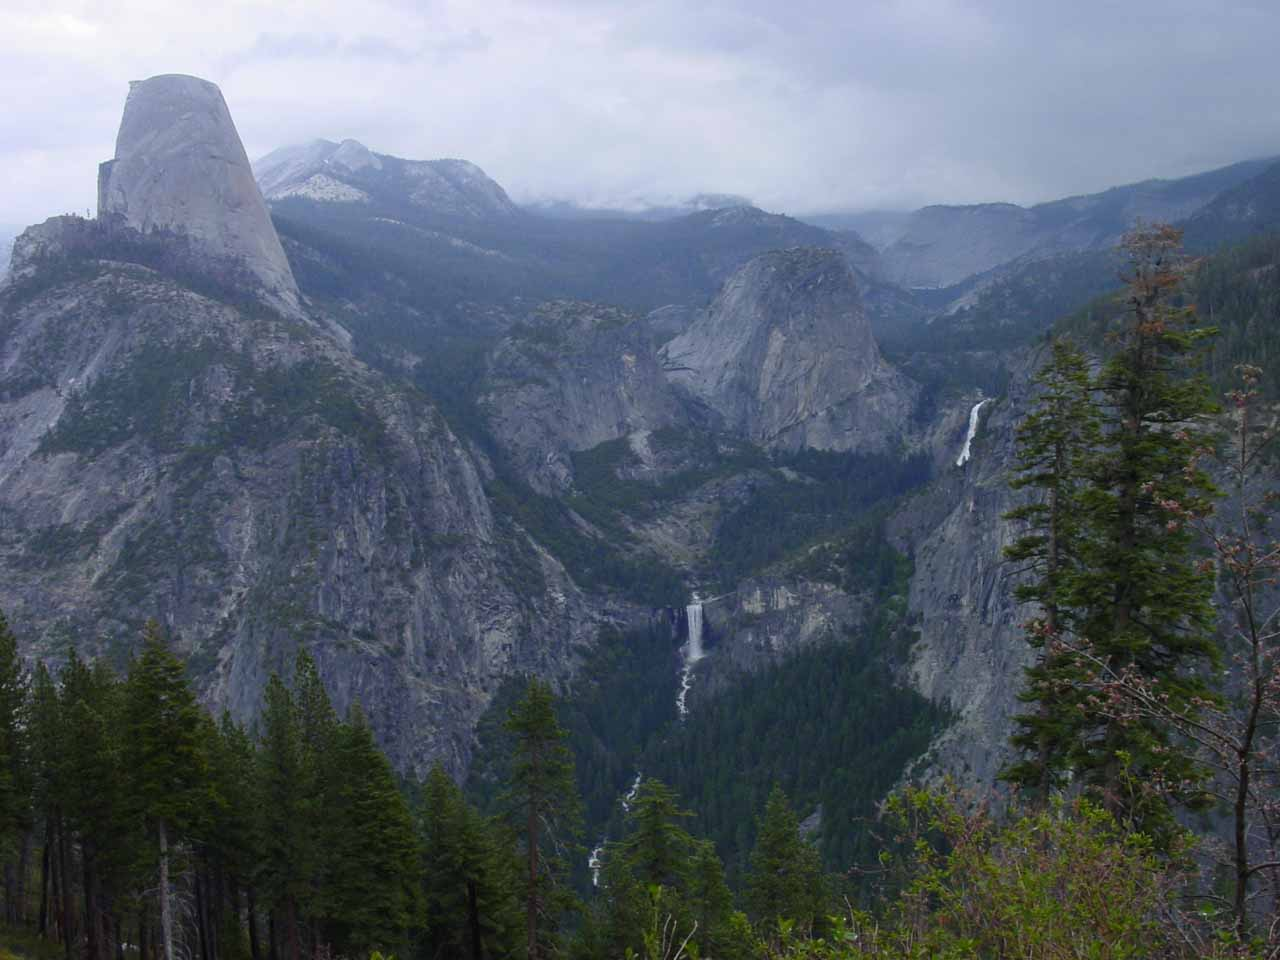 Unusual view of the Giant Stairway and Half Dome from the Panorama Trail